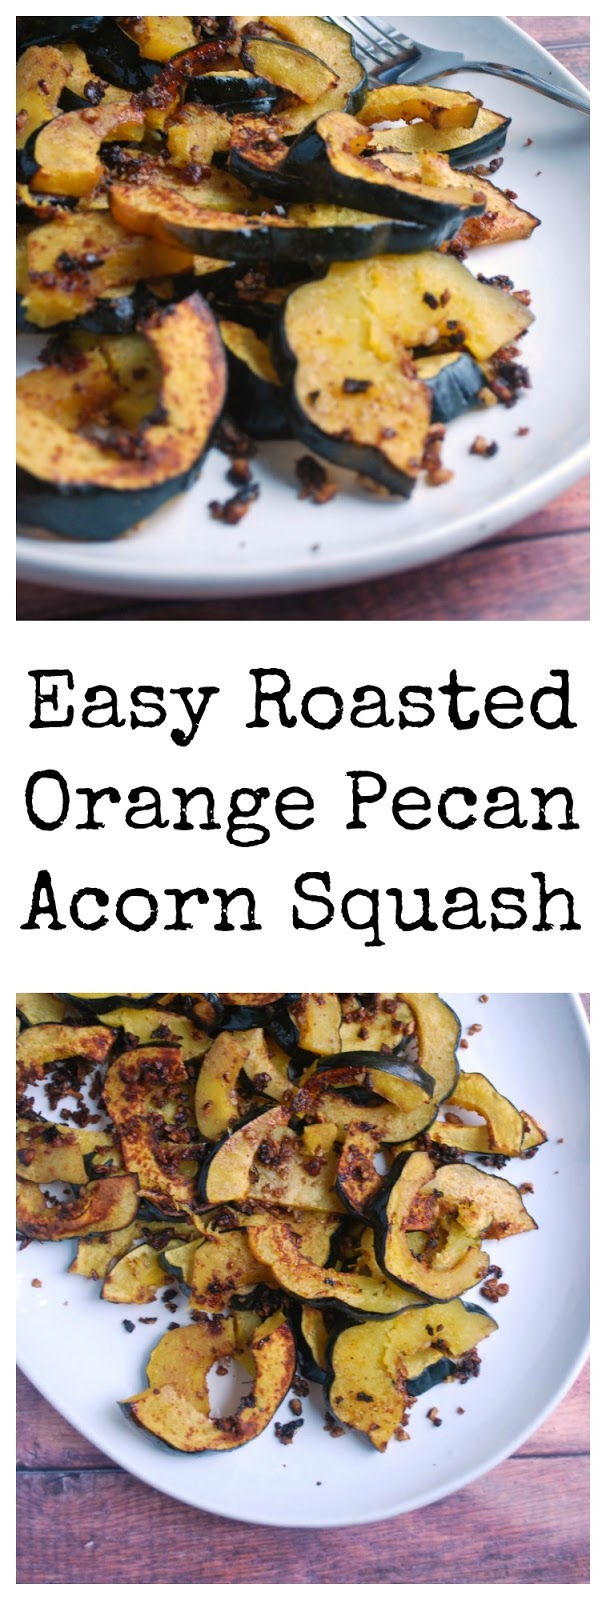 20 minute roasted acorn squash